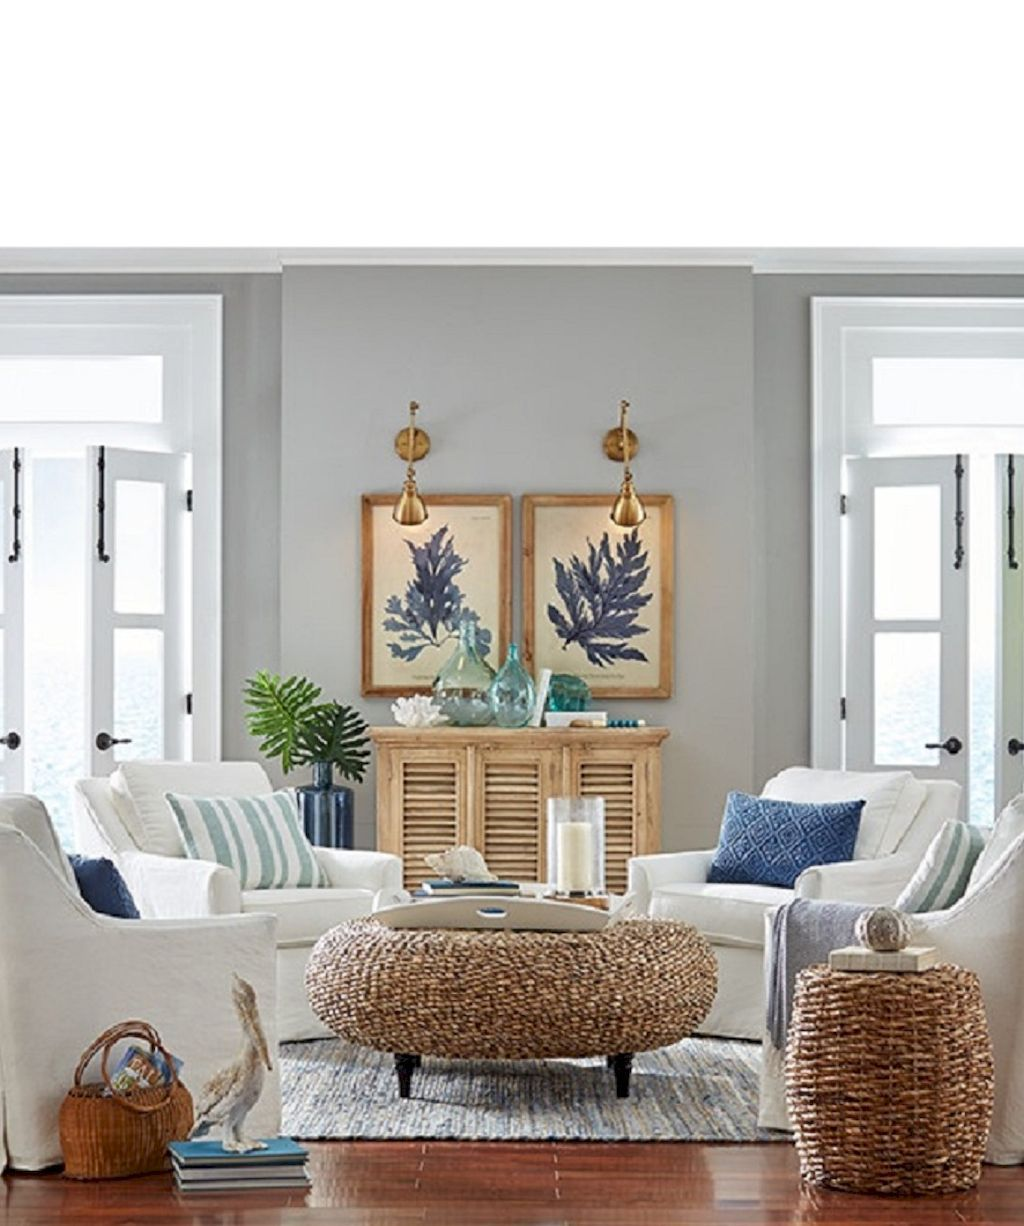 Cozy Coastal Living Room: Cozy Coastal Living Room Decorating Ideas (15)